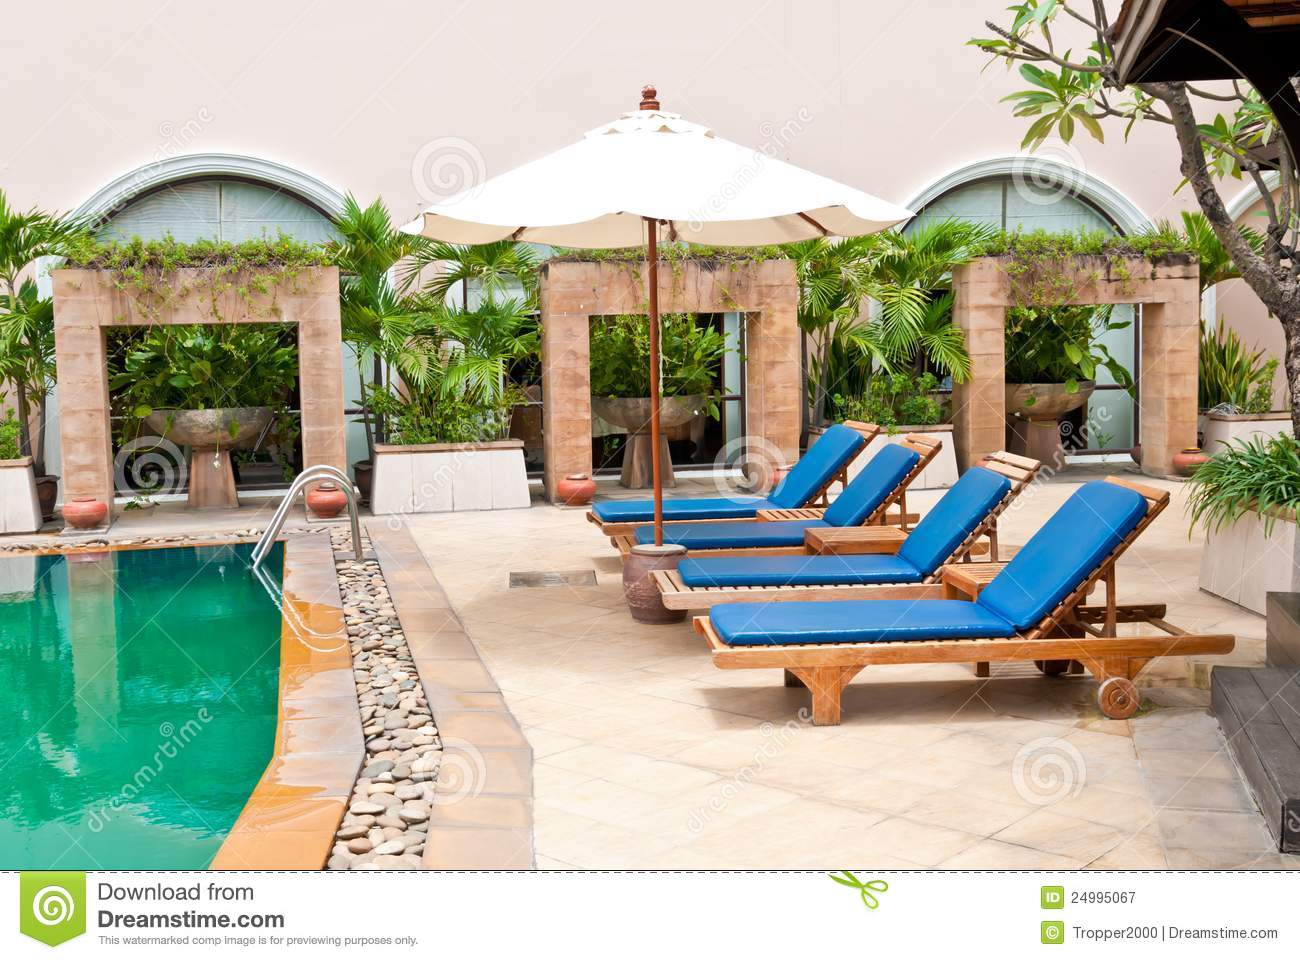 Poolside Bed bed in swimming pool. royalty free stock photography - image: 24995067